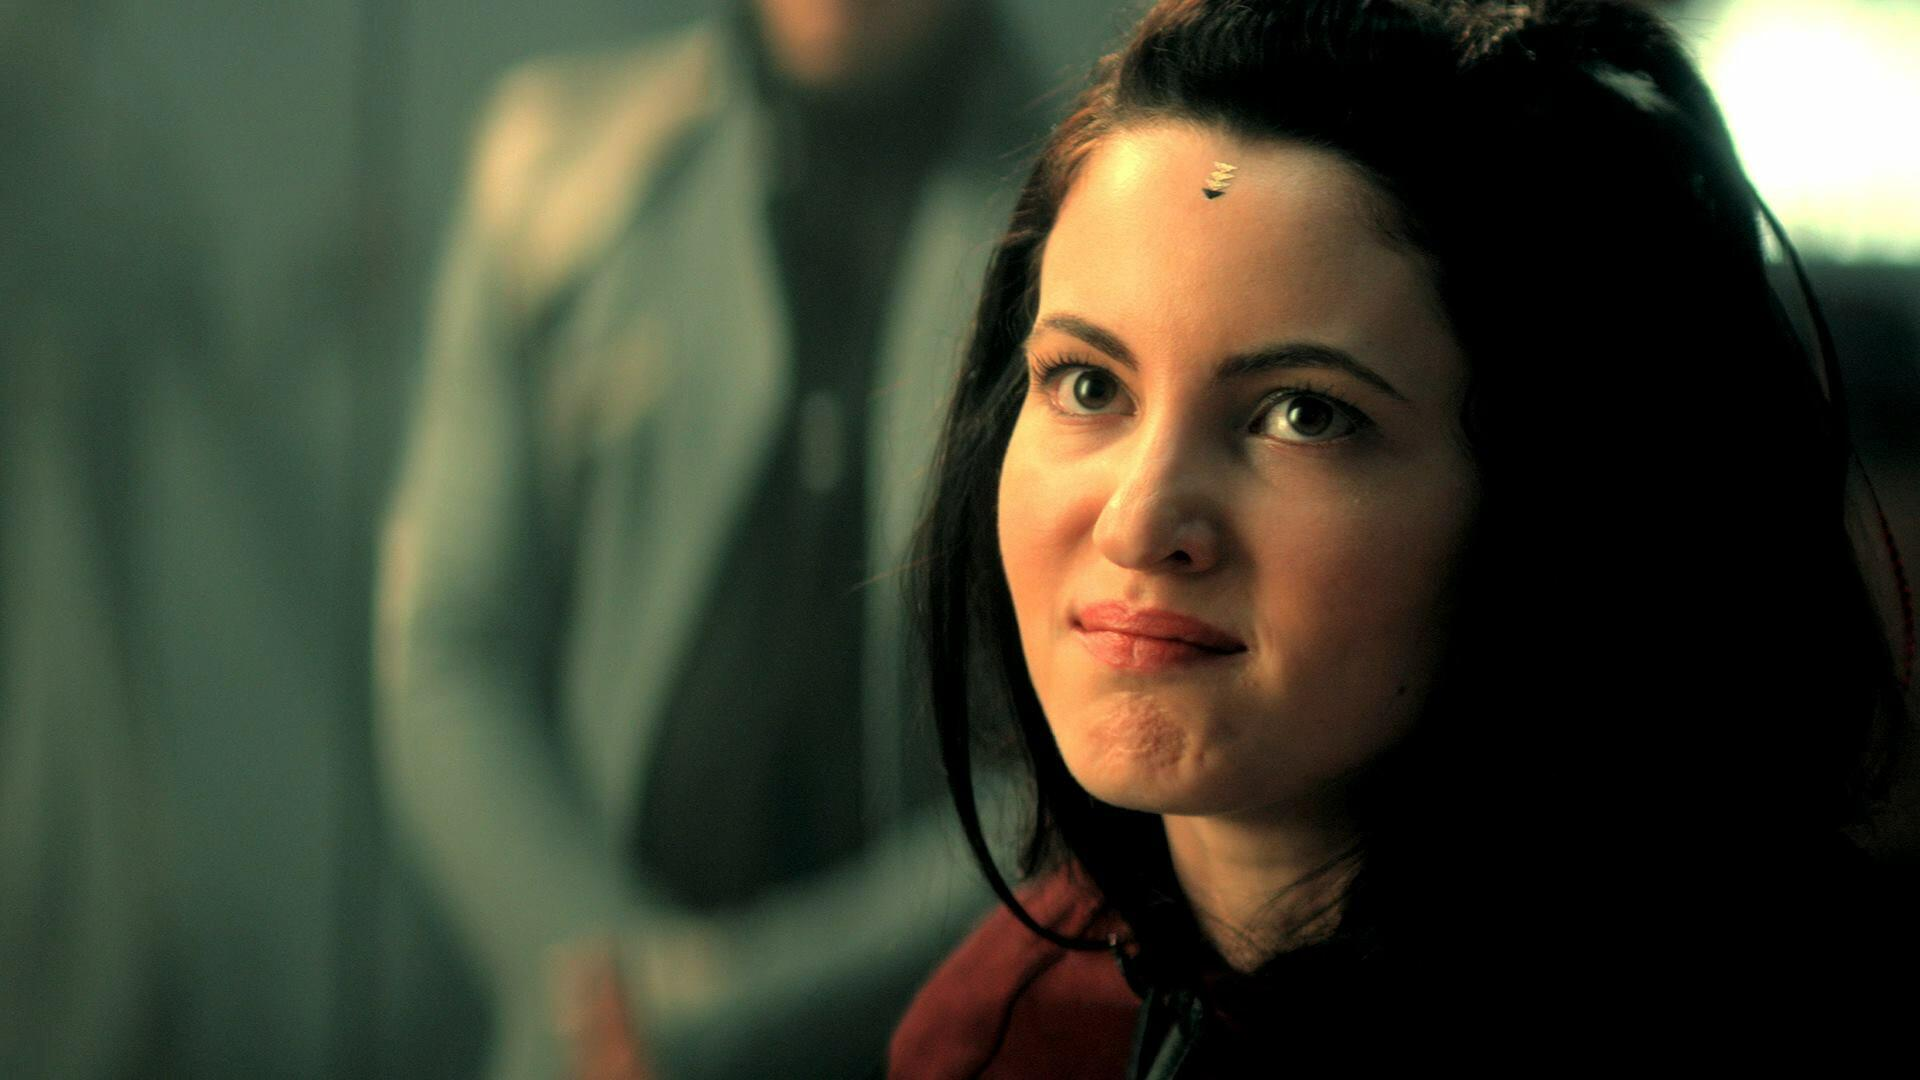 image Emilia burns ivana baquero the shannara chronicles s1e04